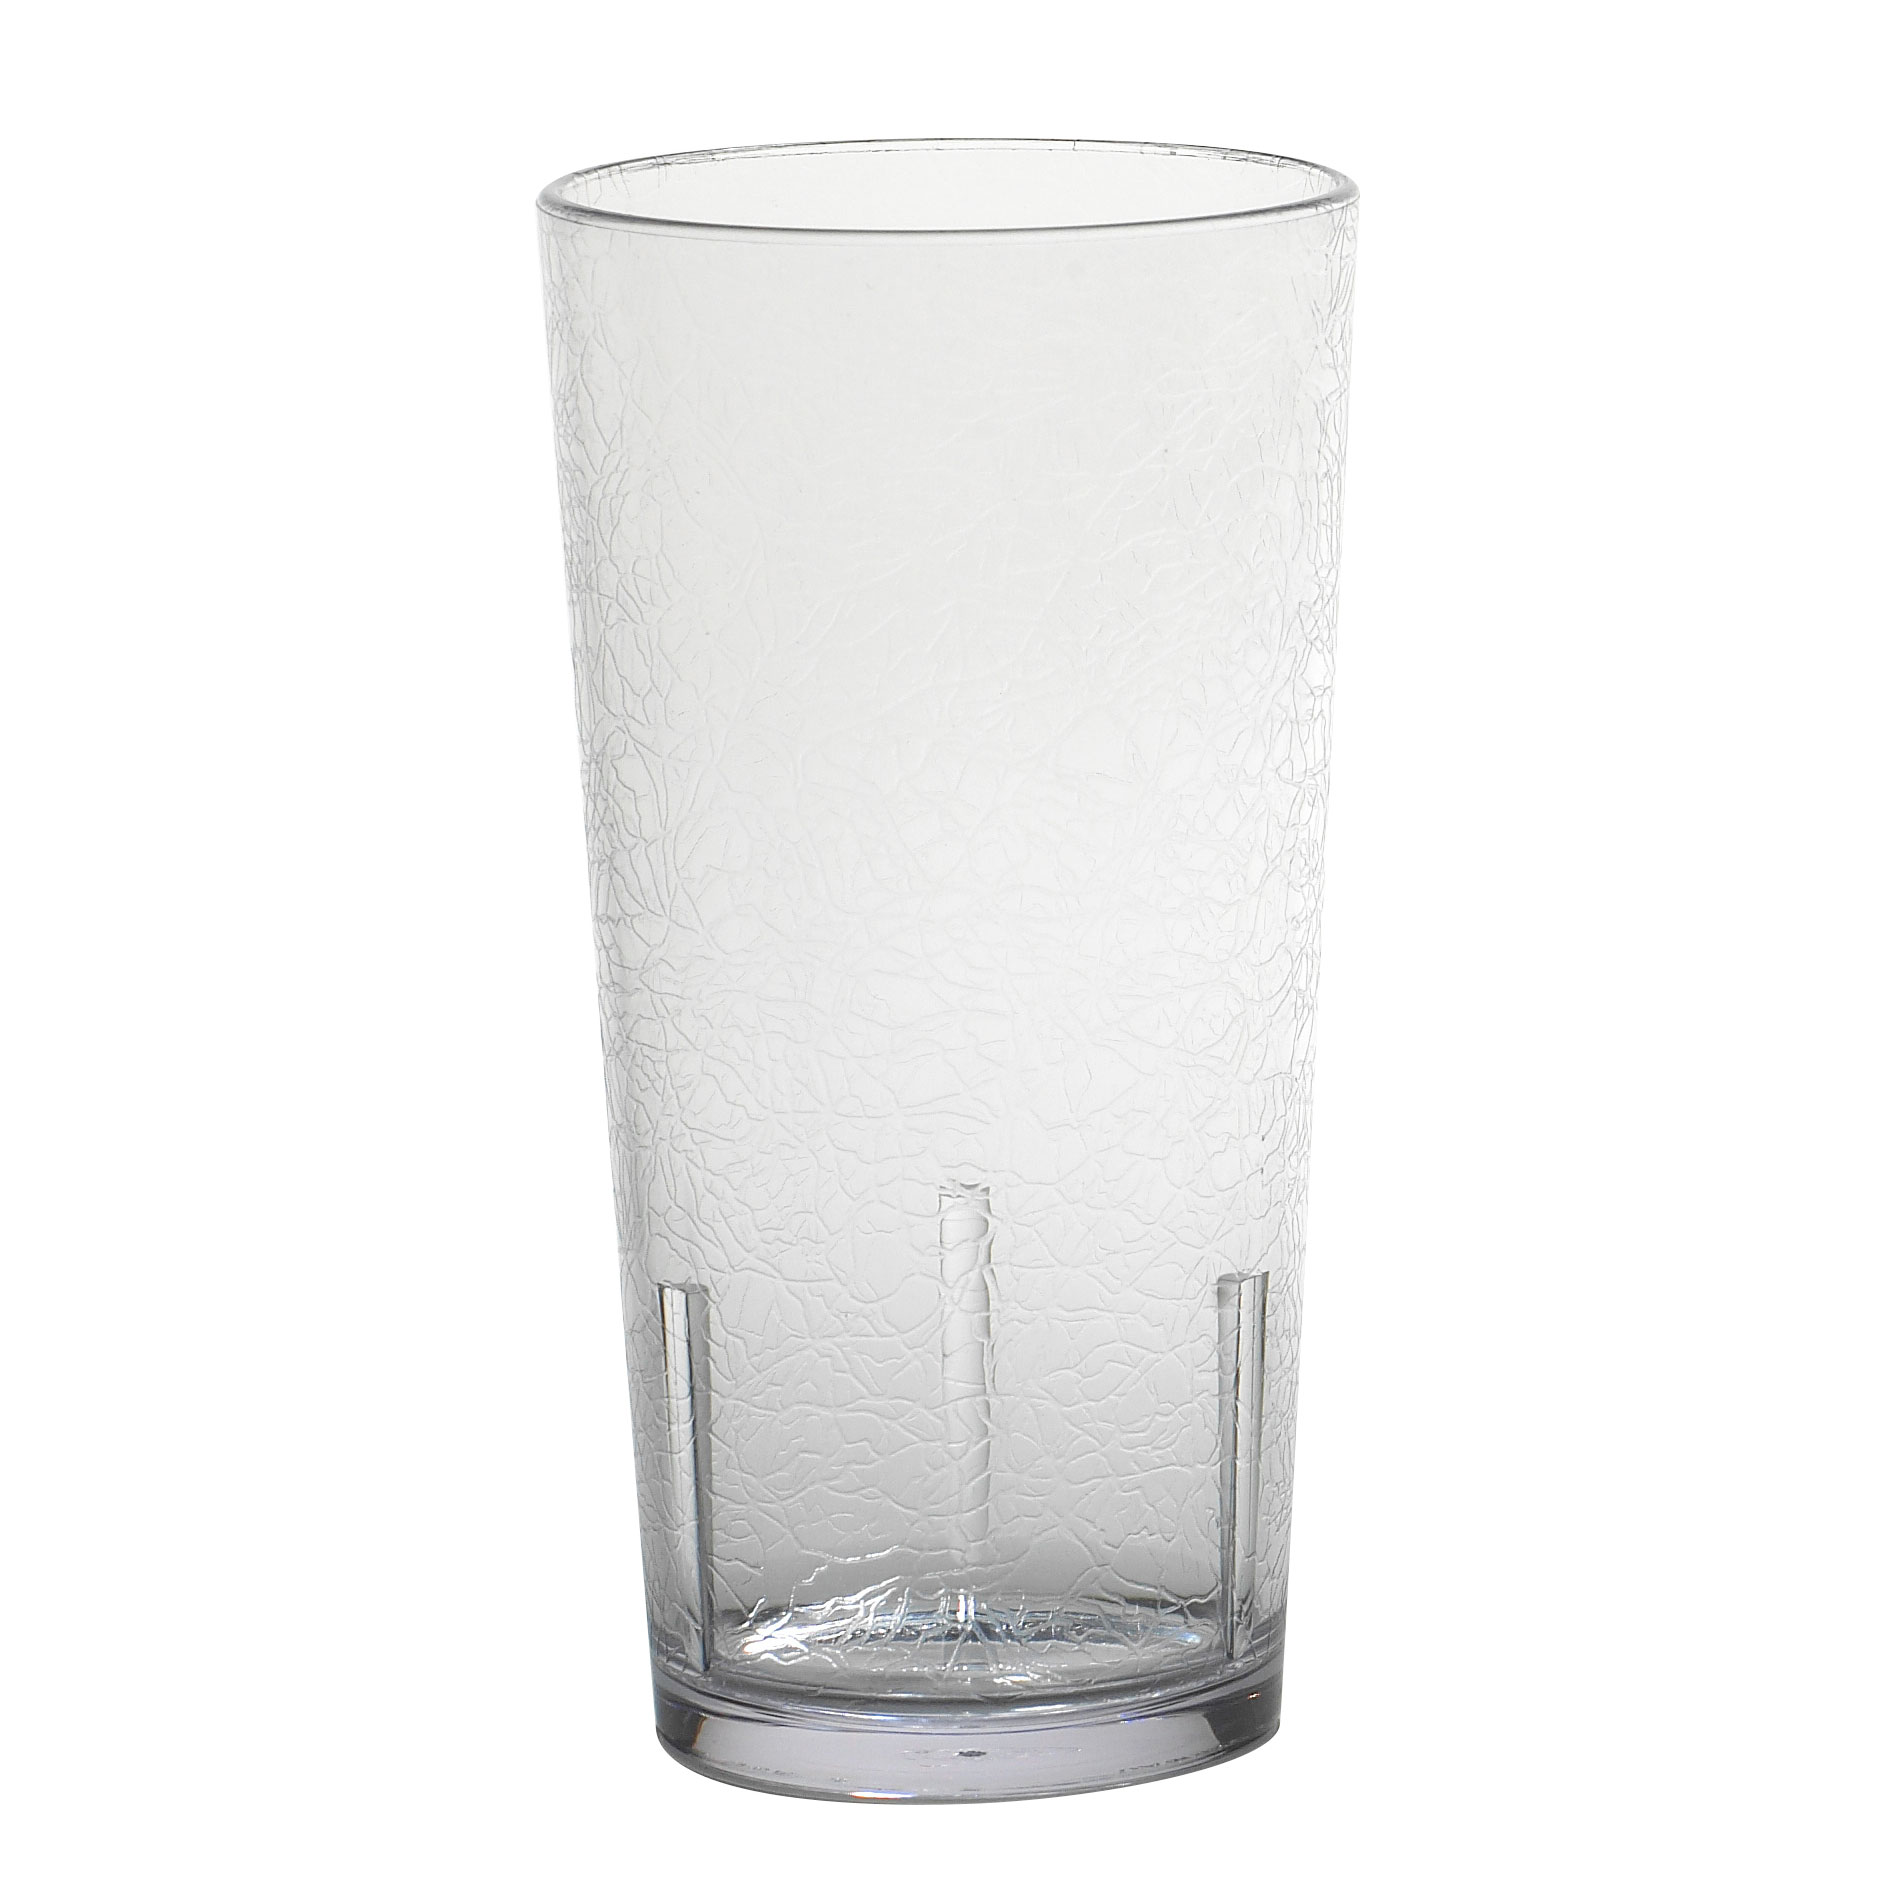 Cambro D16152 serving/drinking glasses